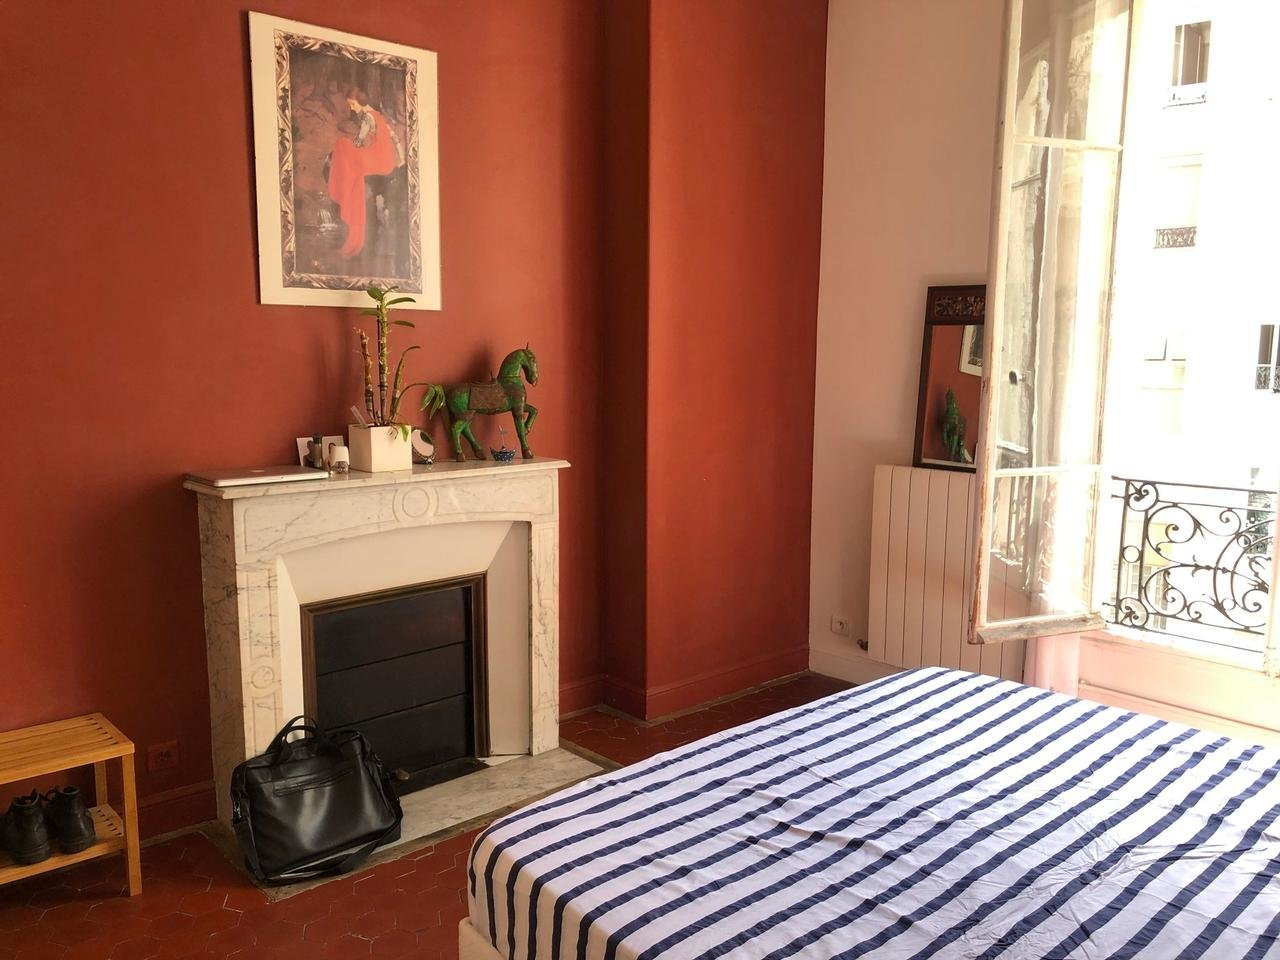 Appartement  3 Rooms 69.48m2  for sale   356 000 €